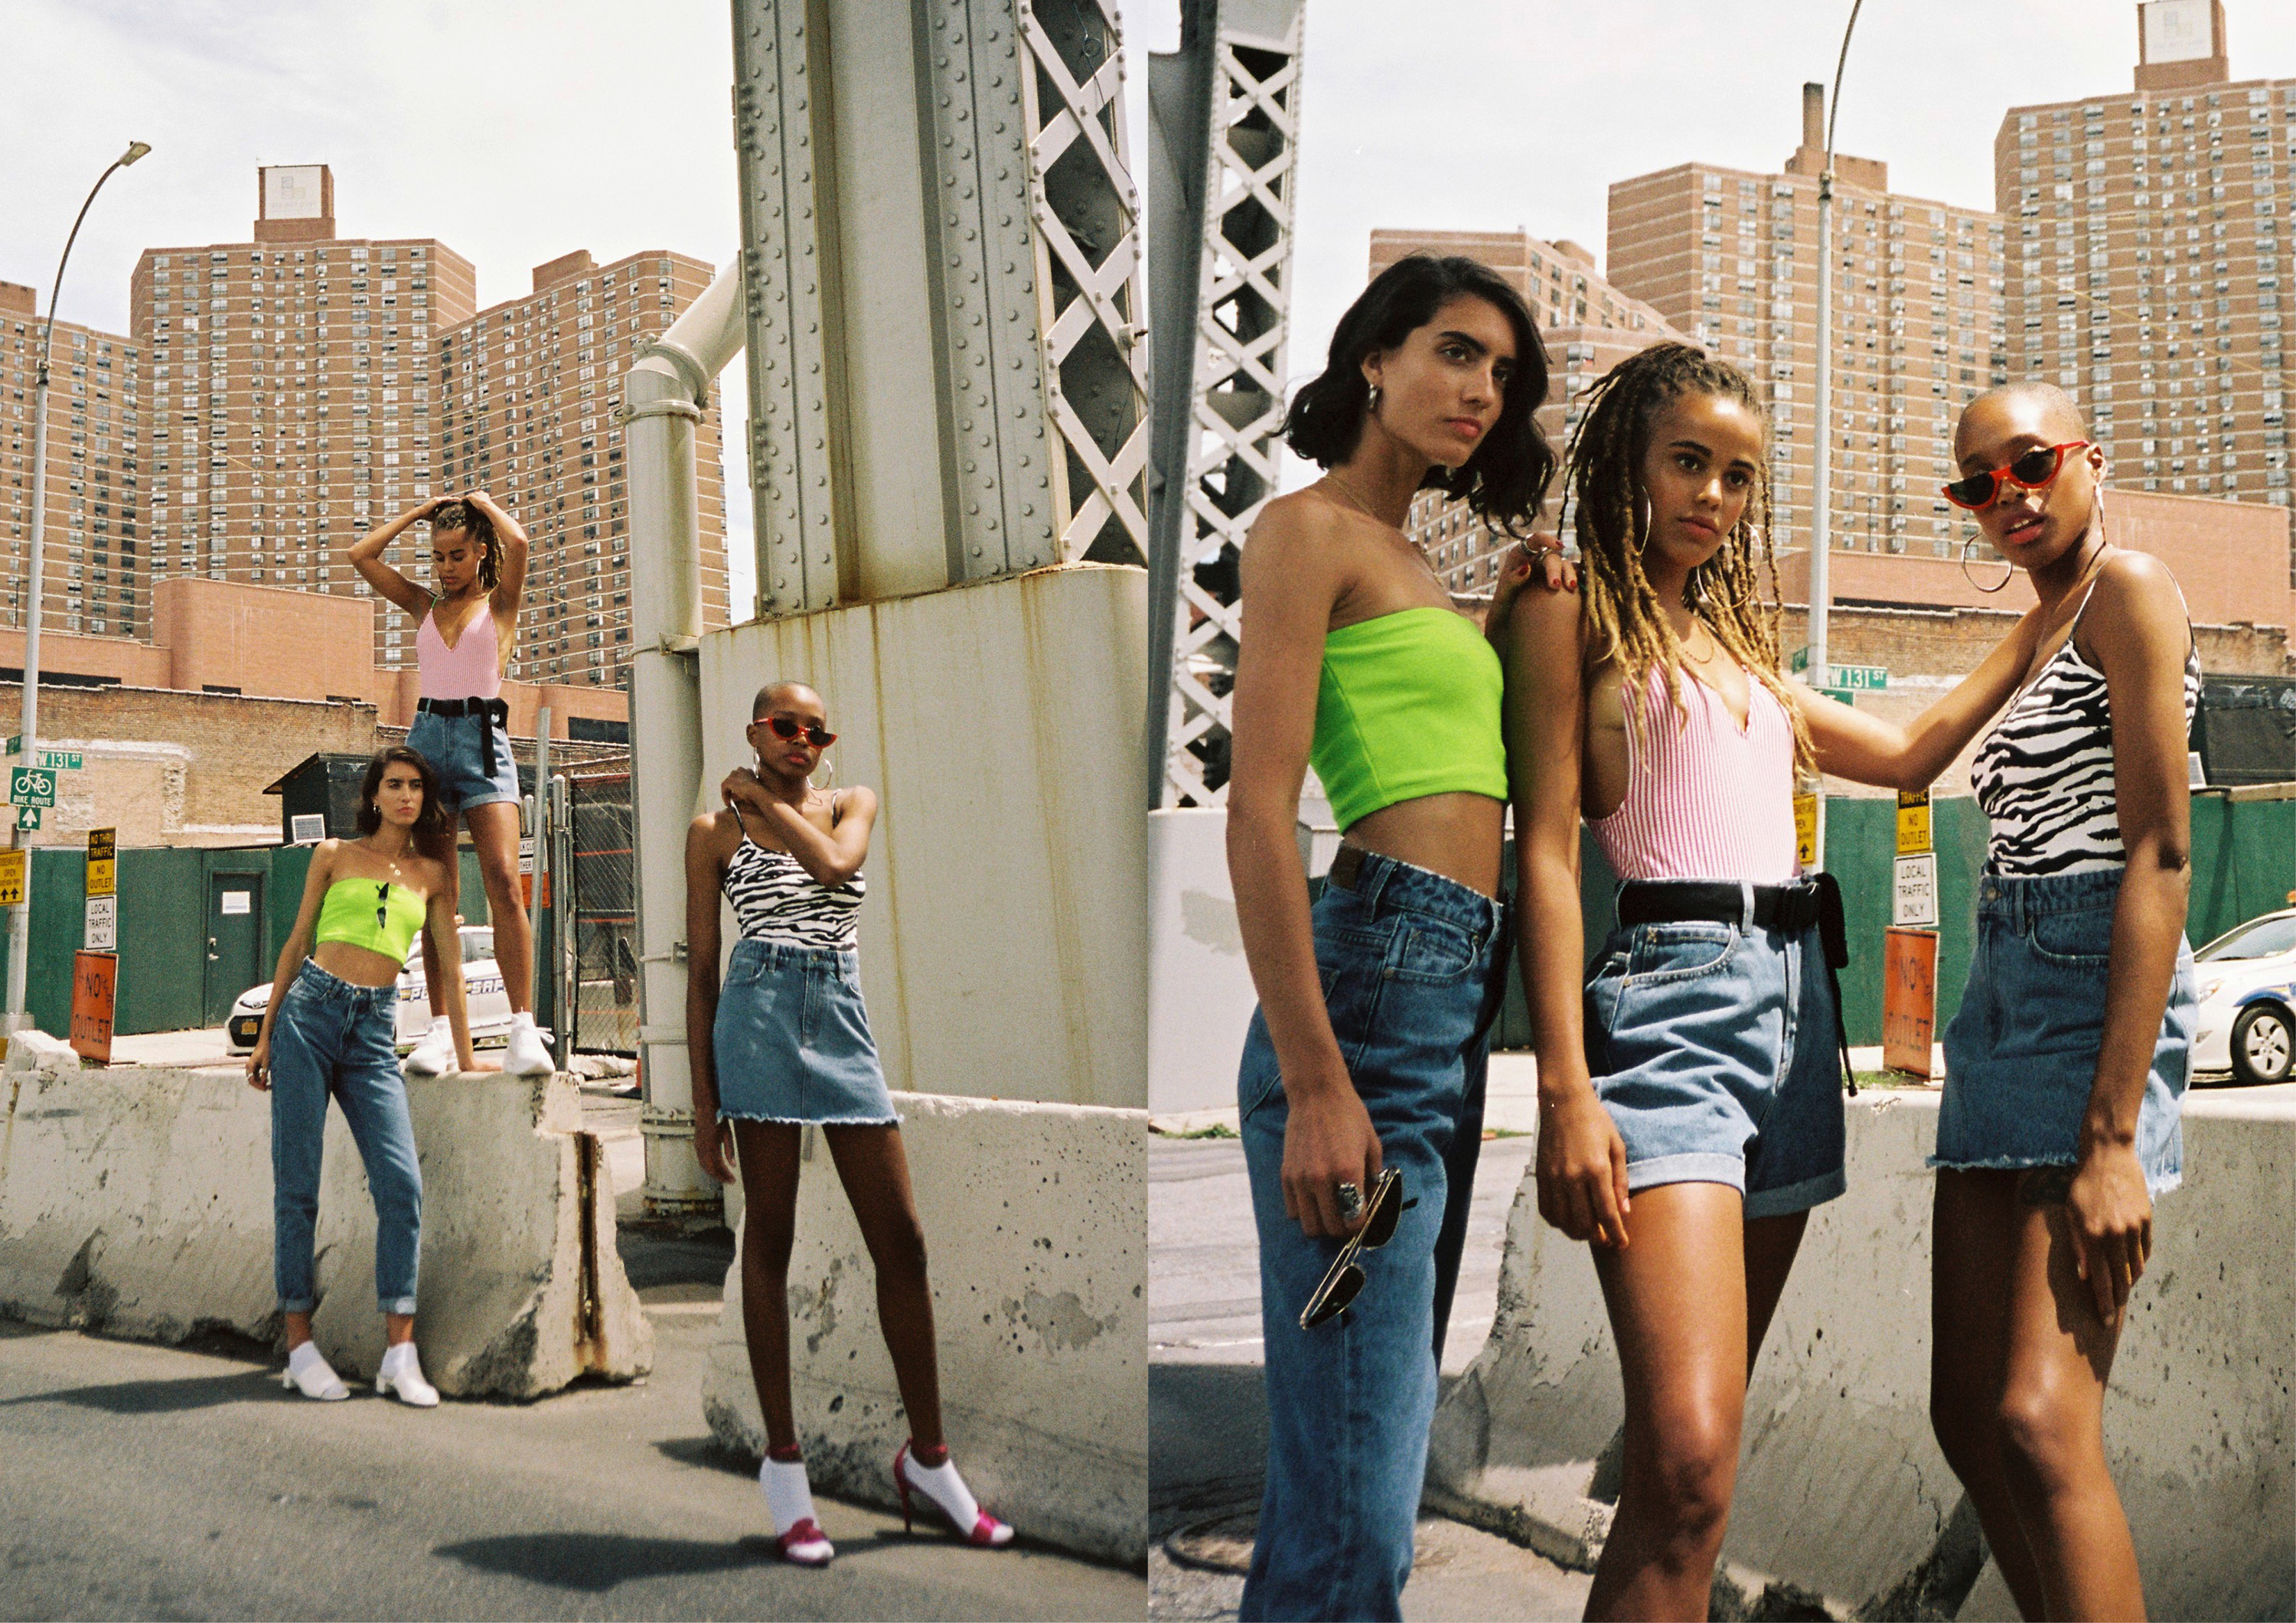 Lee Jeans Australia takes on NYC for the new Harlem collection launch. Models are wearing high waisted jeans,skirts and shorts.